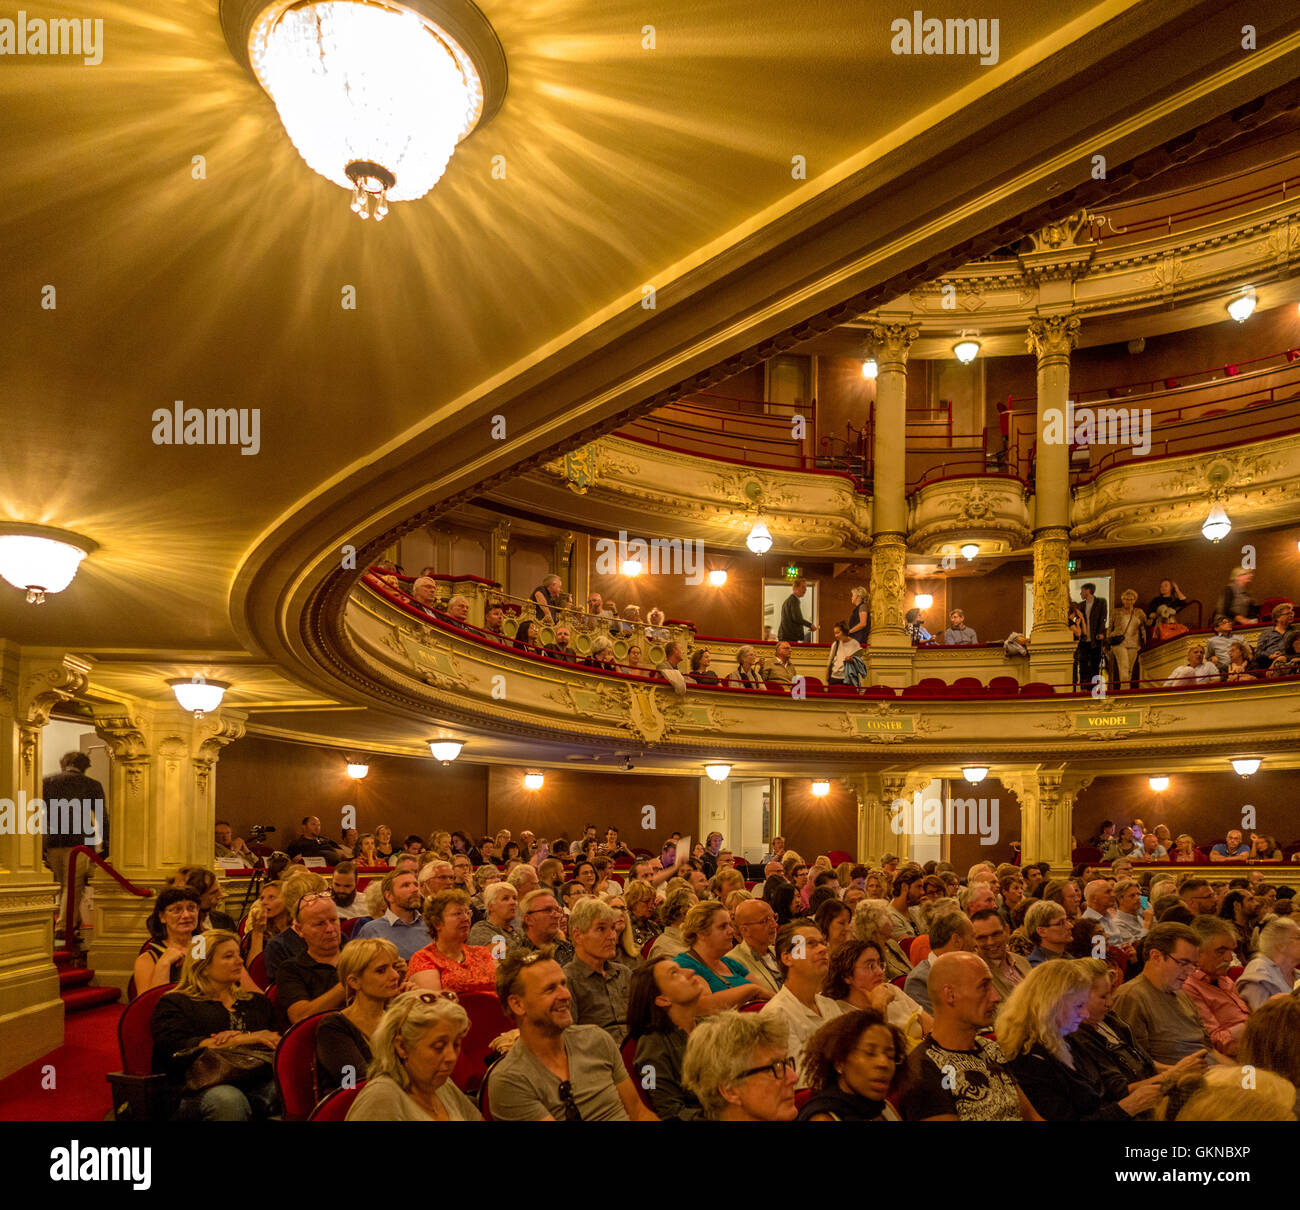 Amsterdam Municipal Theater - Dutch: Stadsschouwburg - interior with people. - Stock Image